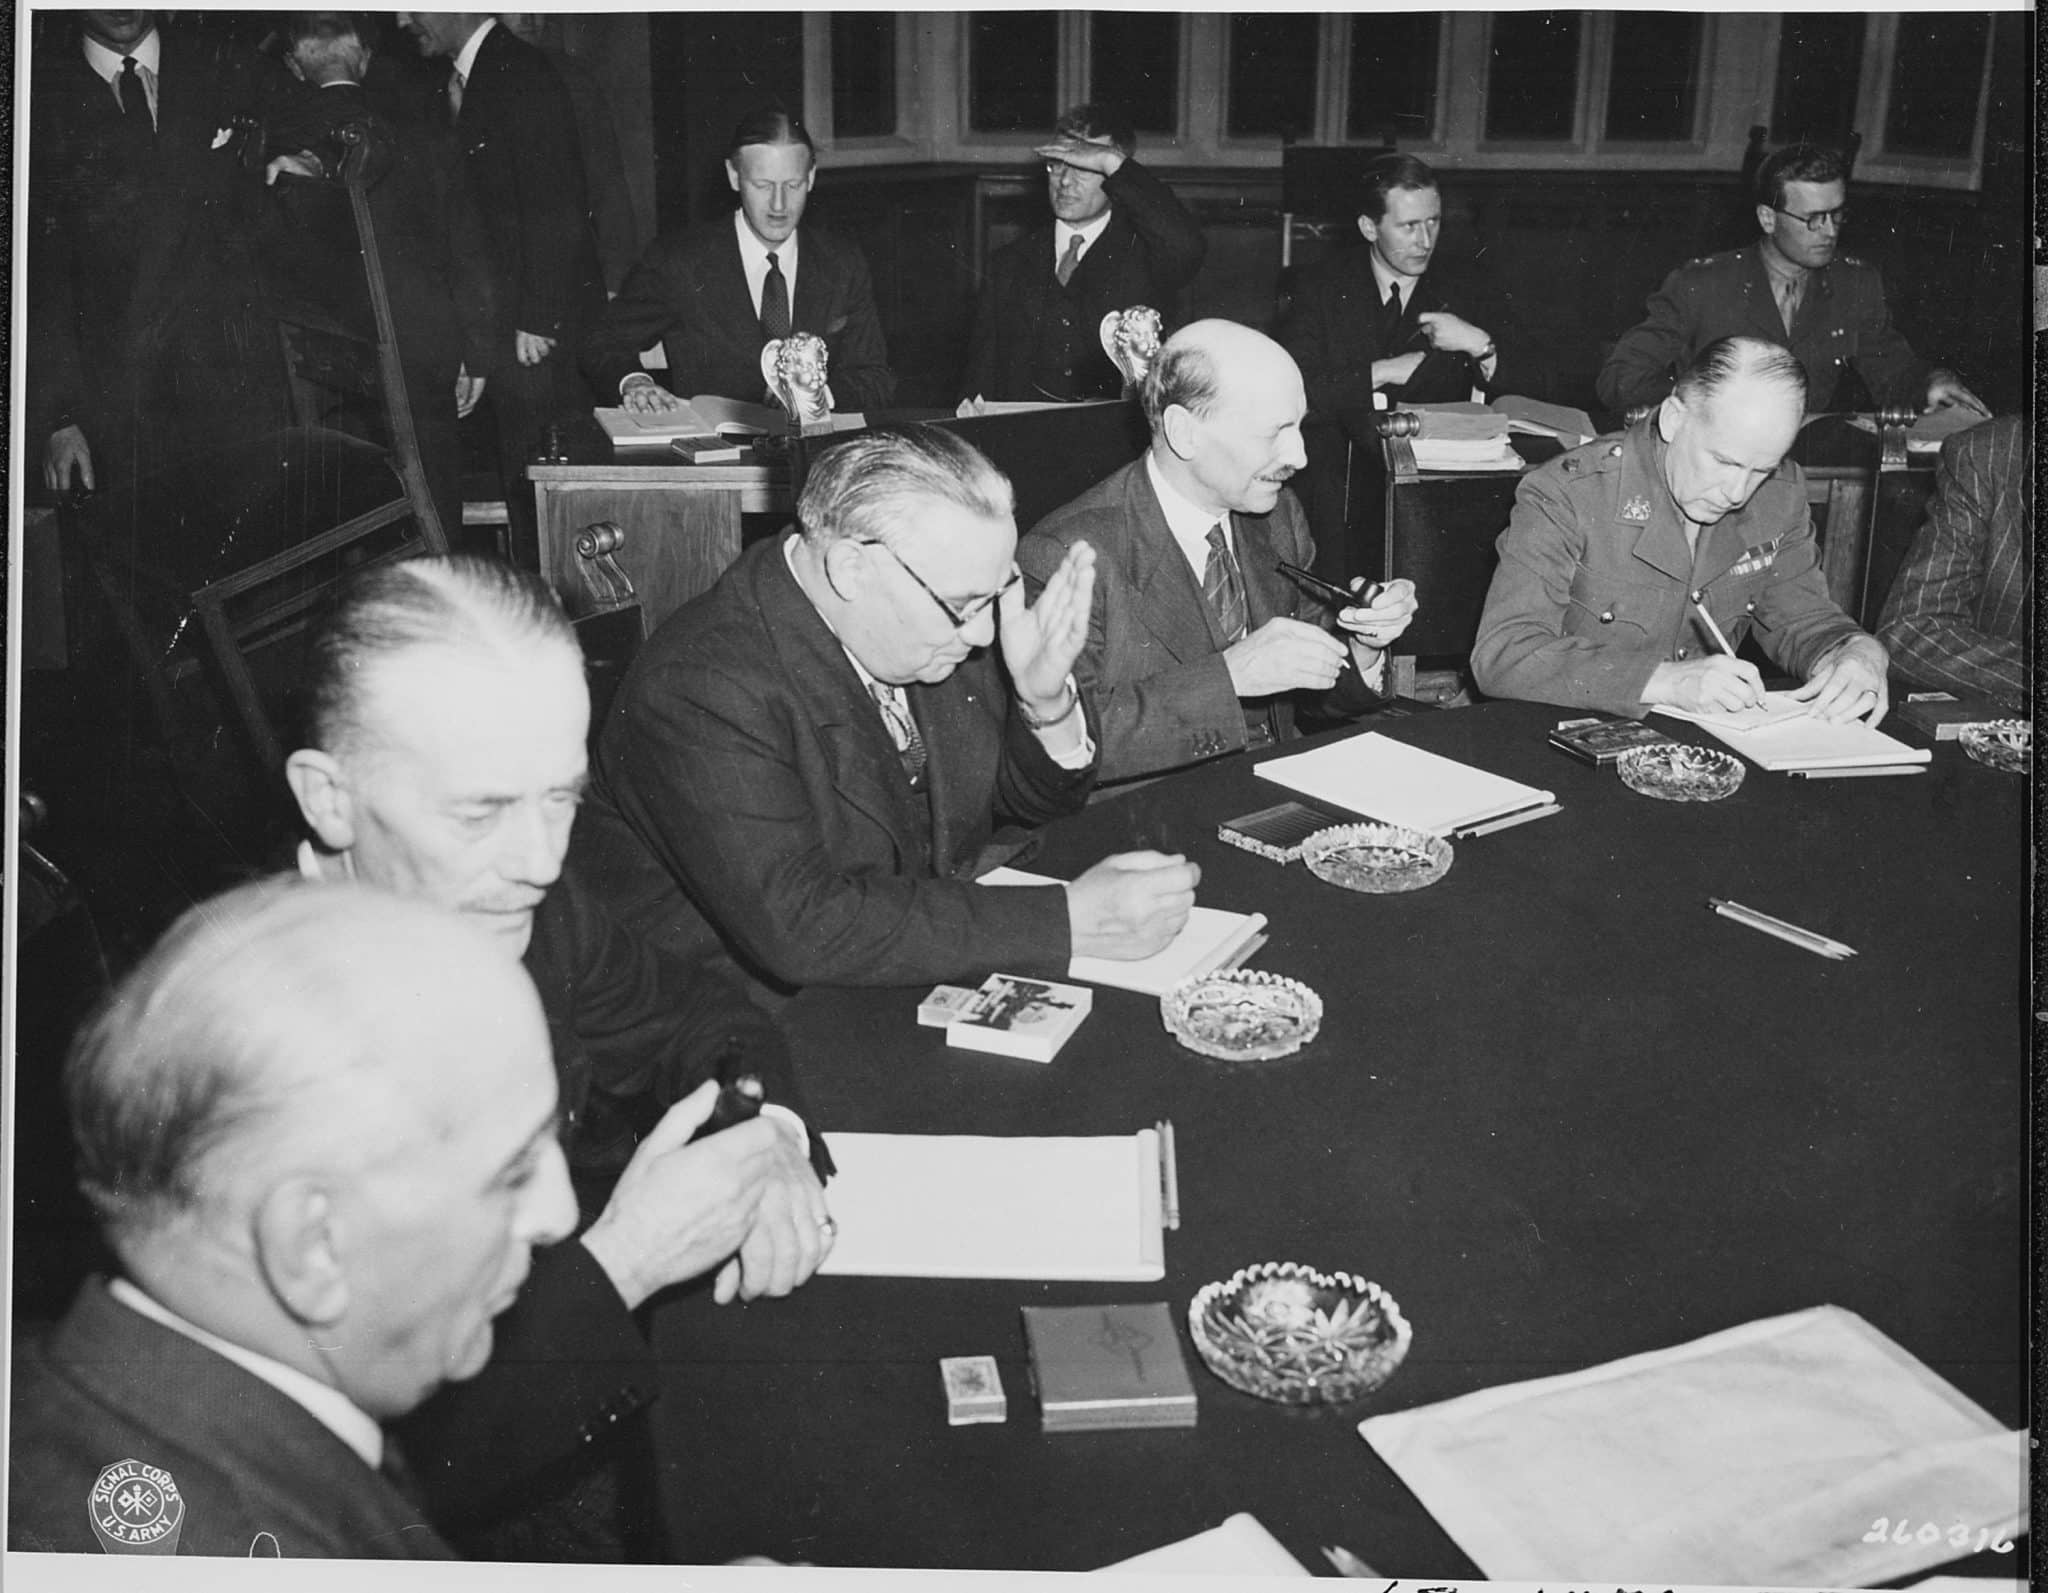 The Potsdam Conference - July 31st 1945 - Ernest Bevin, Minister of Foreign Affairs, and UK Prime Minister Clement Attlee at a Potsdam plenary session